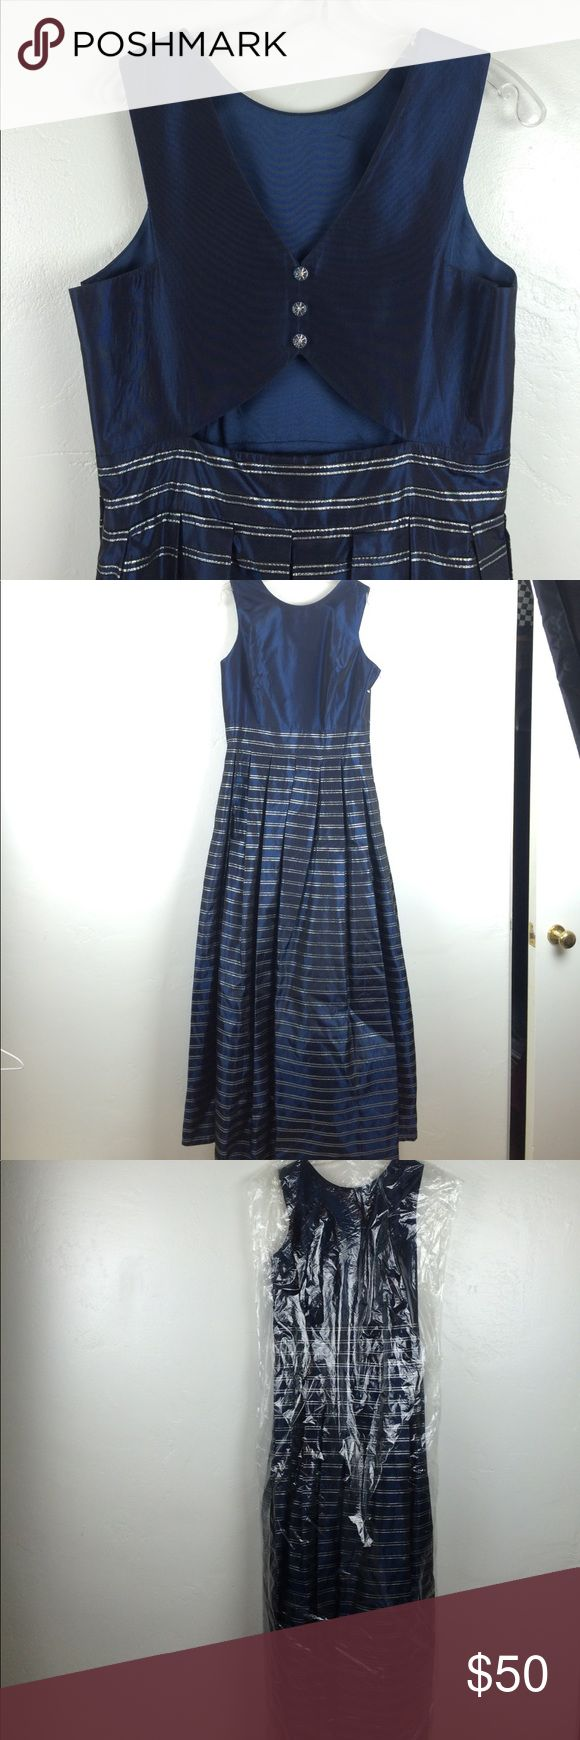 NWOT long dark blue silver stripes prom dress Gorgeous never worn prom or occasion dress. Rich midnight blue, slightly iridescent with shiny silver stripes on skirt. Back has a cut out with buttons for extra glamour. ever beauty Dresses Prom